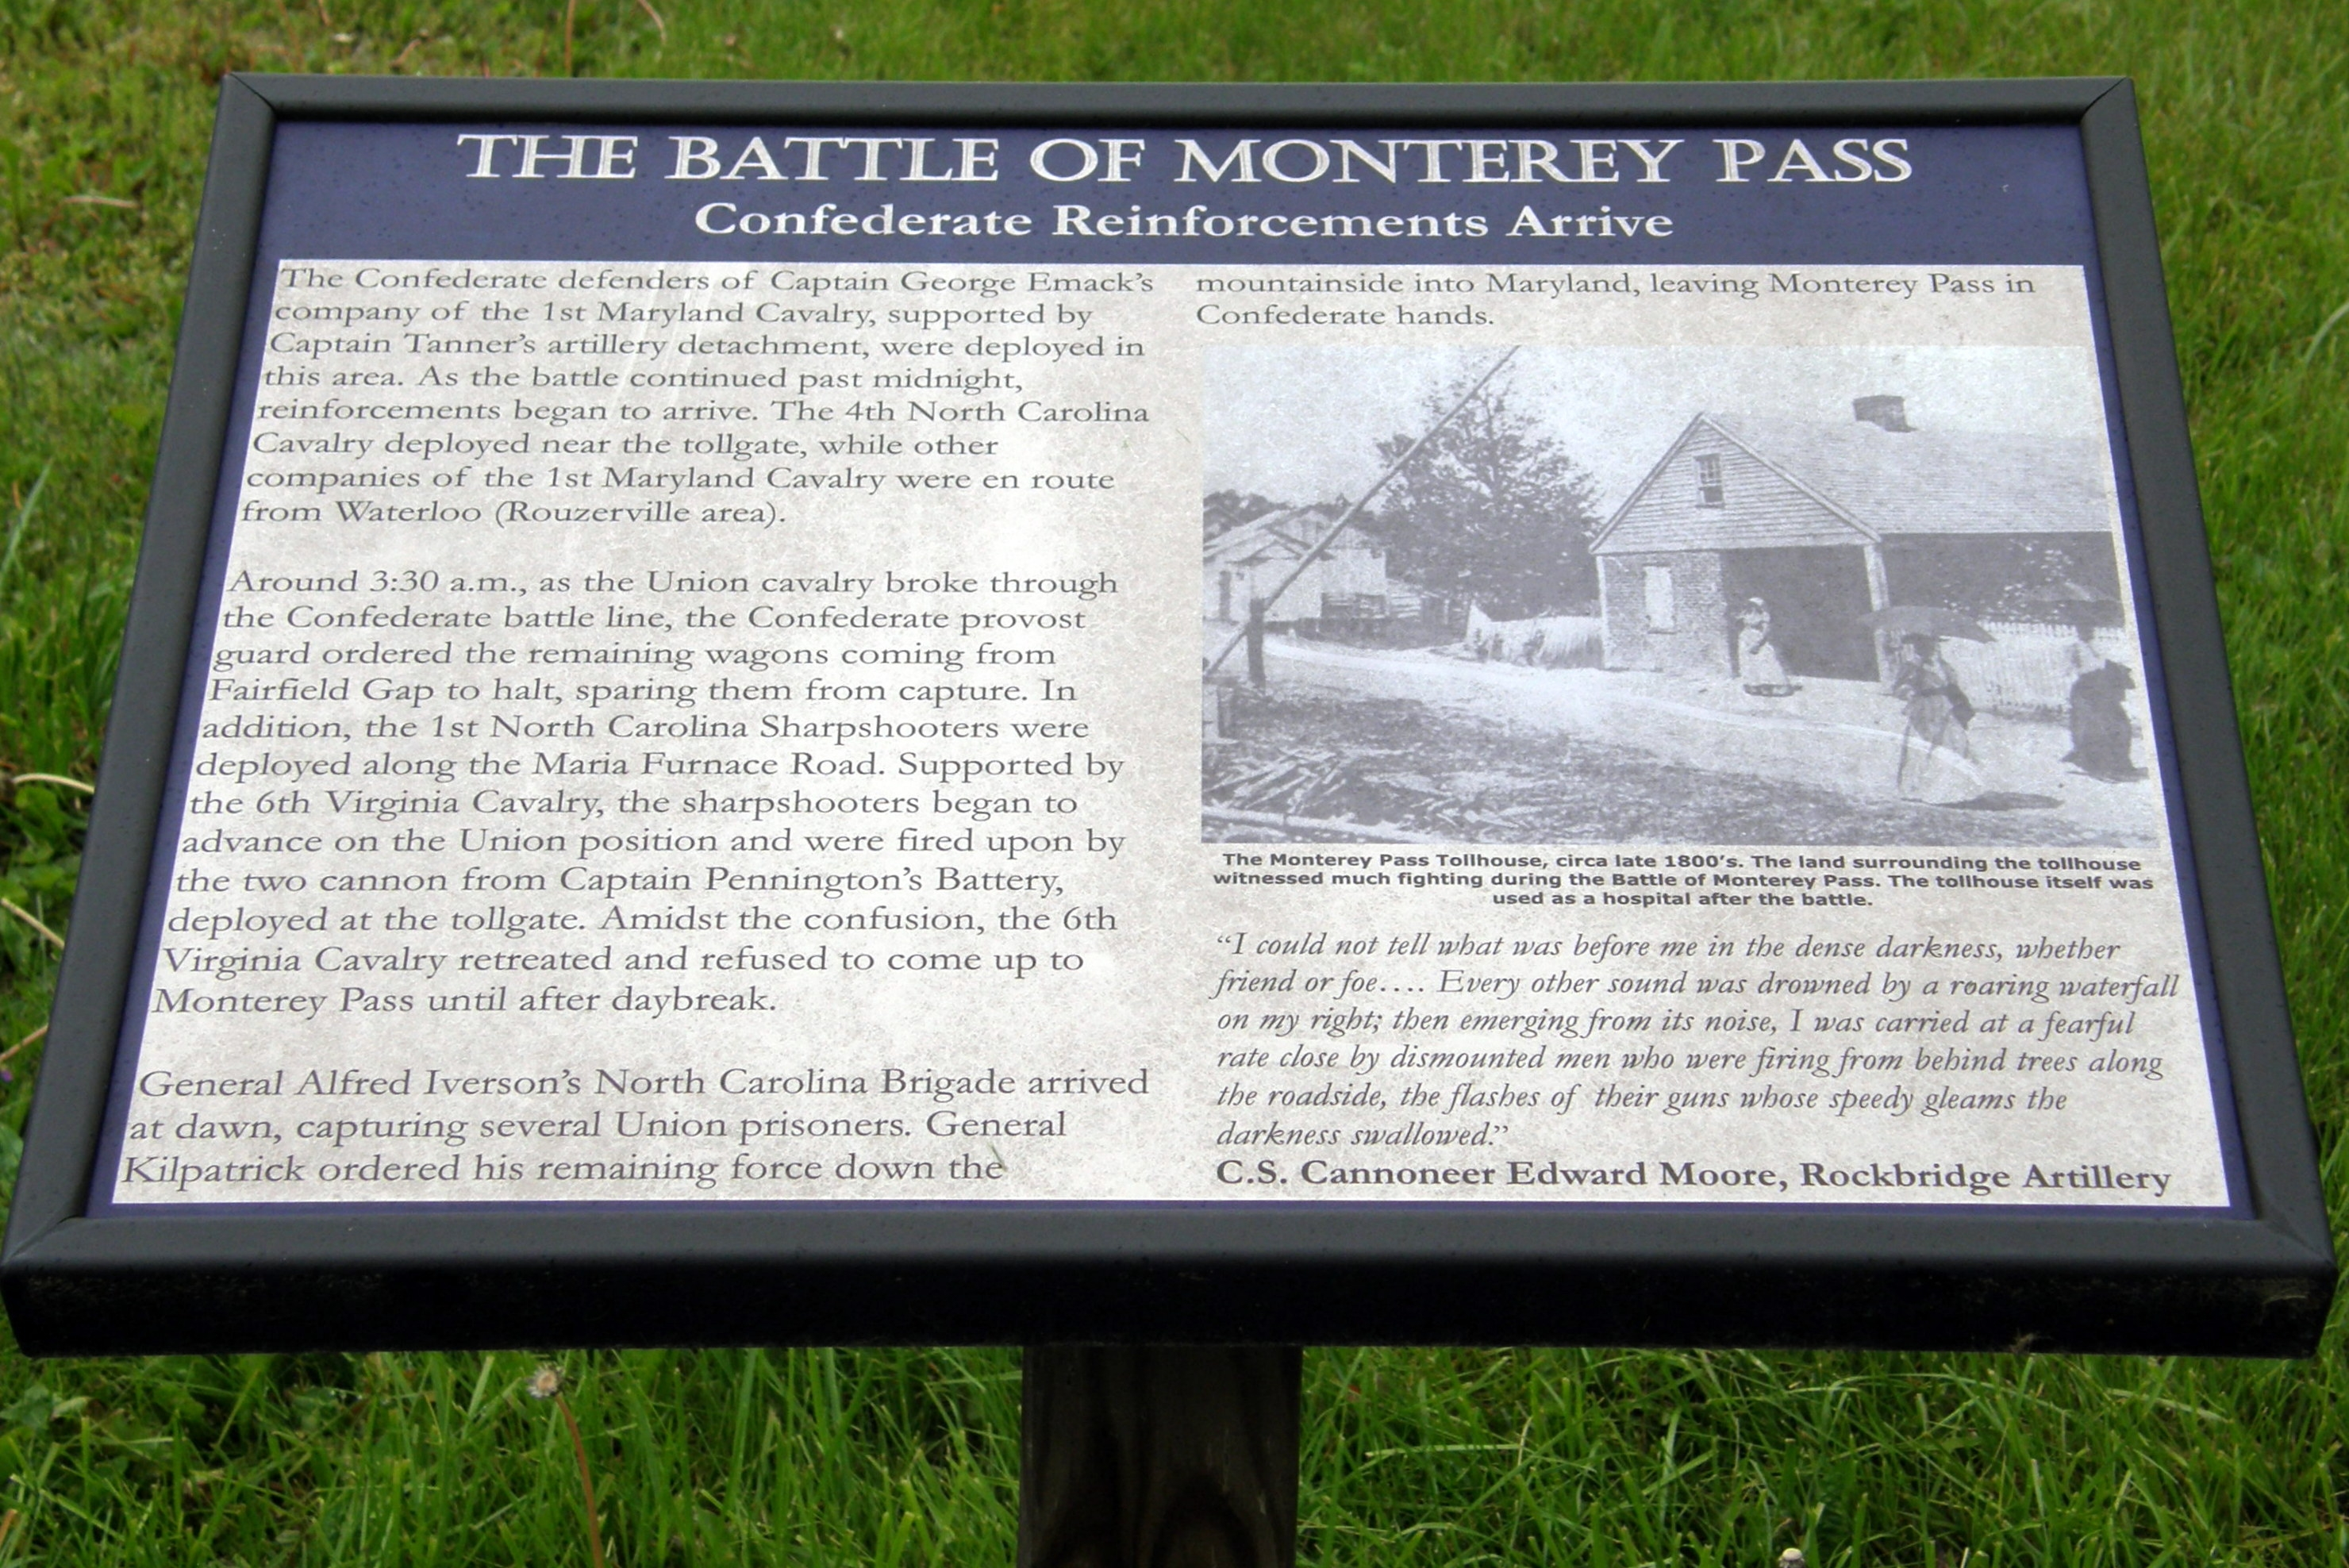 The Battle of Monterey Pass Marker